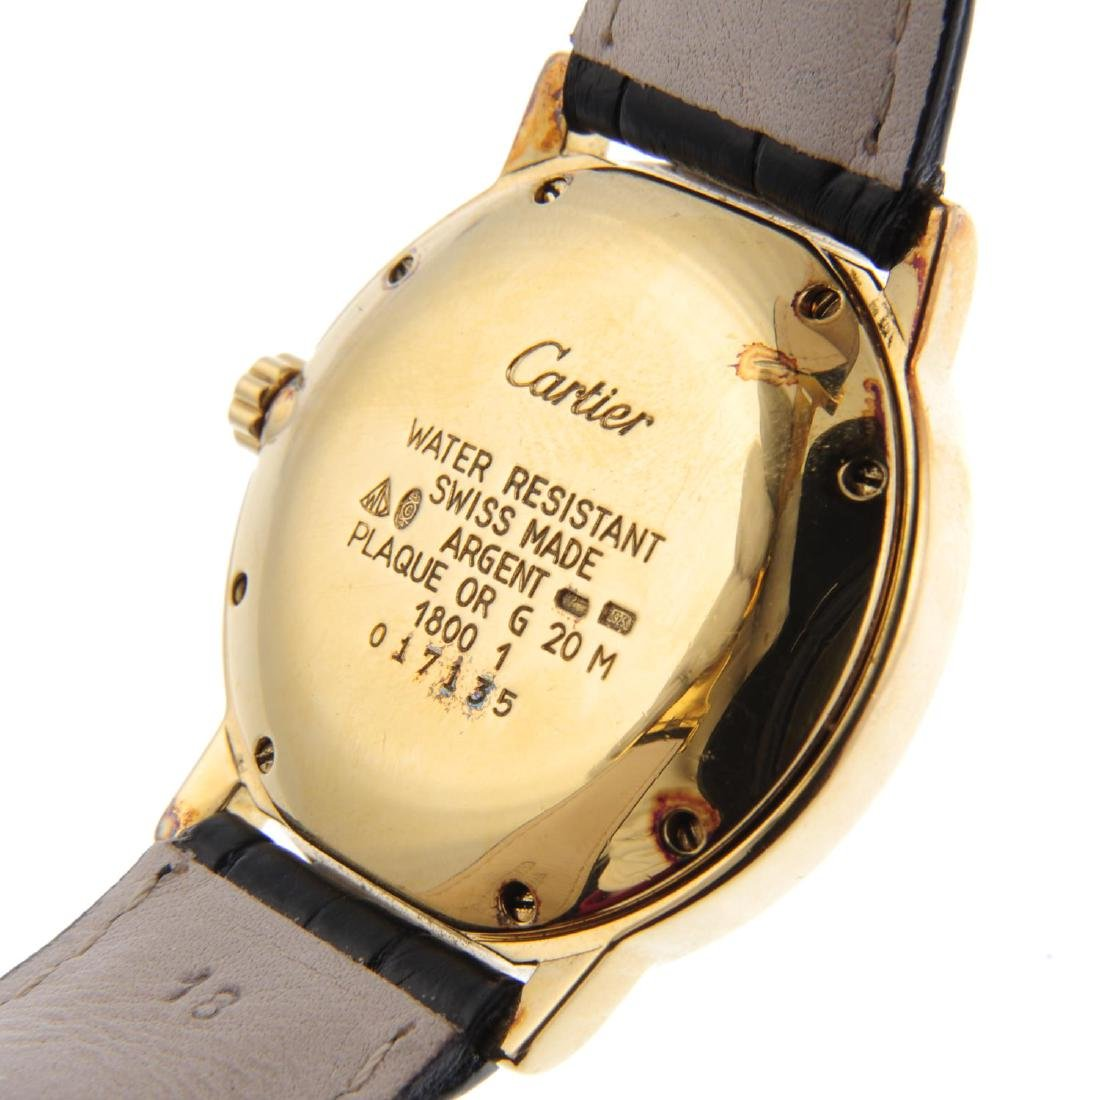 CARTIER - a Must de Cartier Ronde wrist watch. Gold - 4